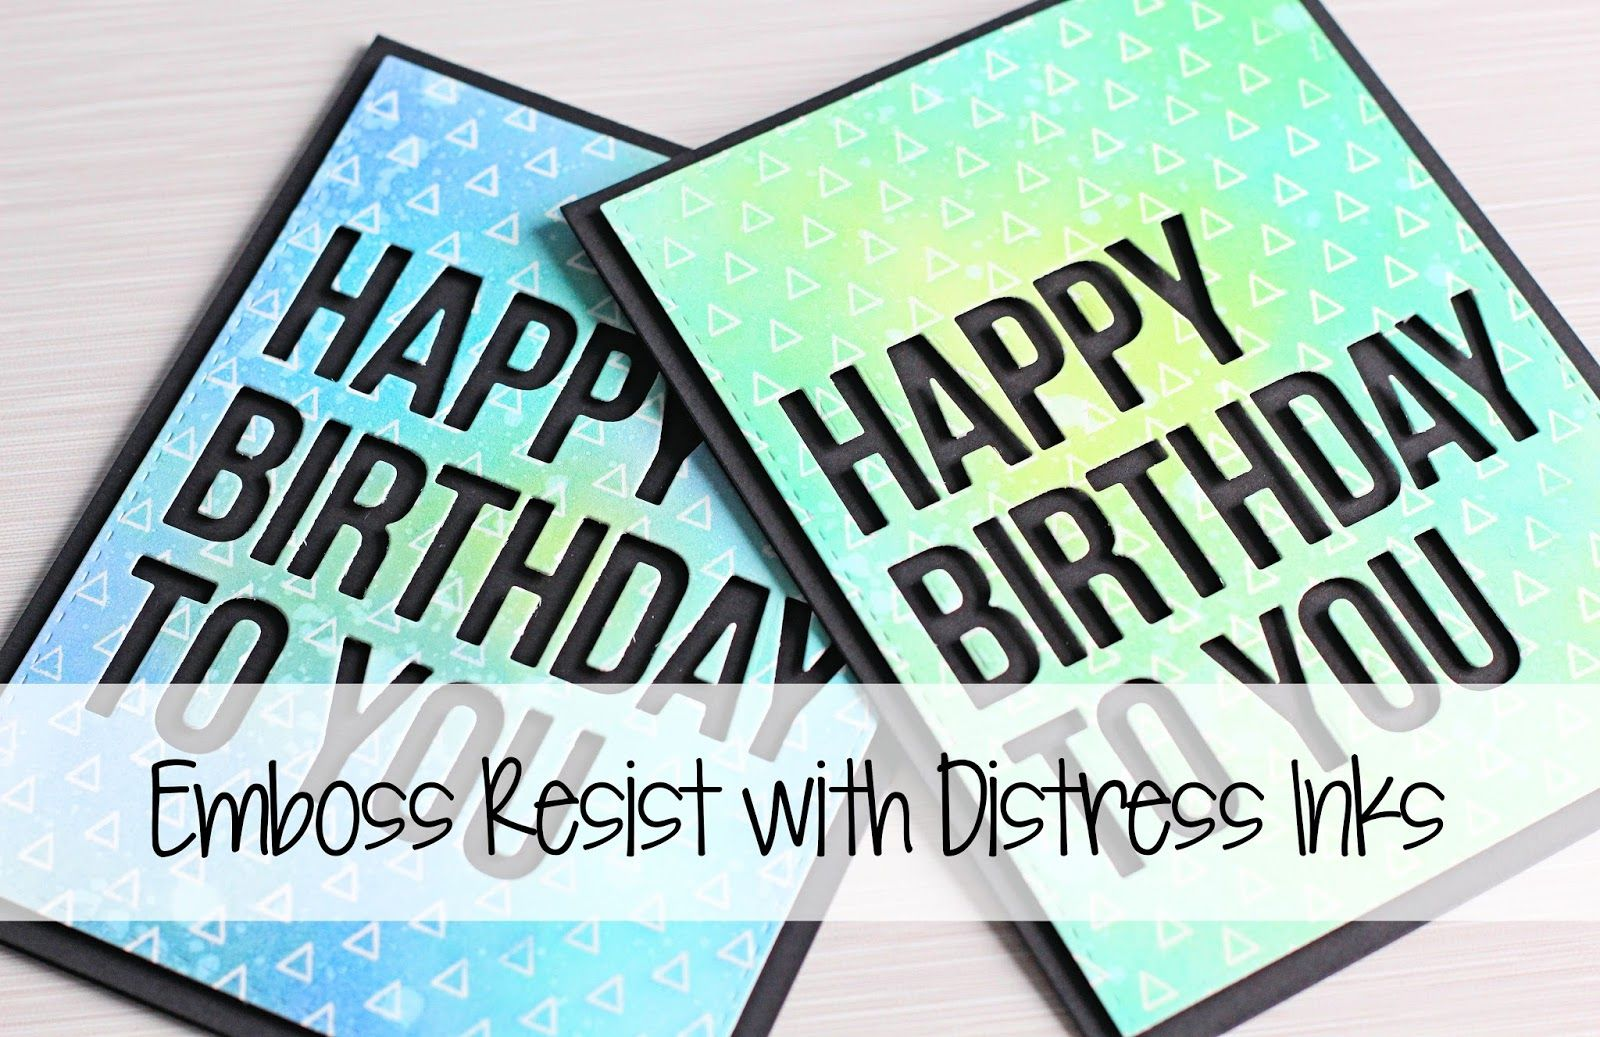 Video emboss resist with distress inks handmade cards